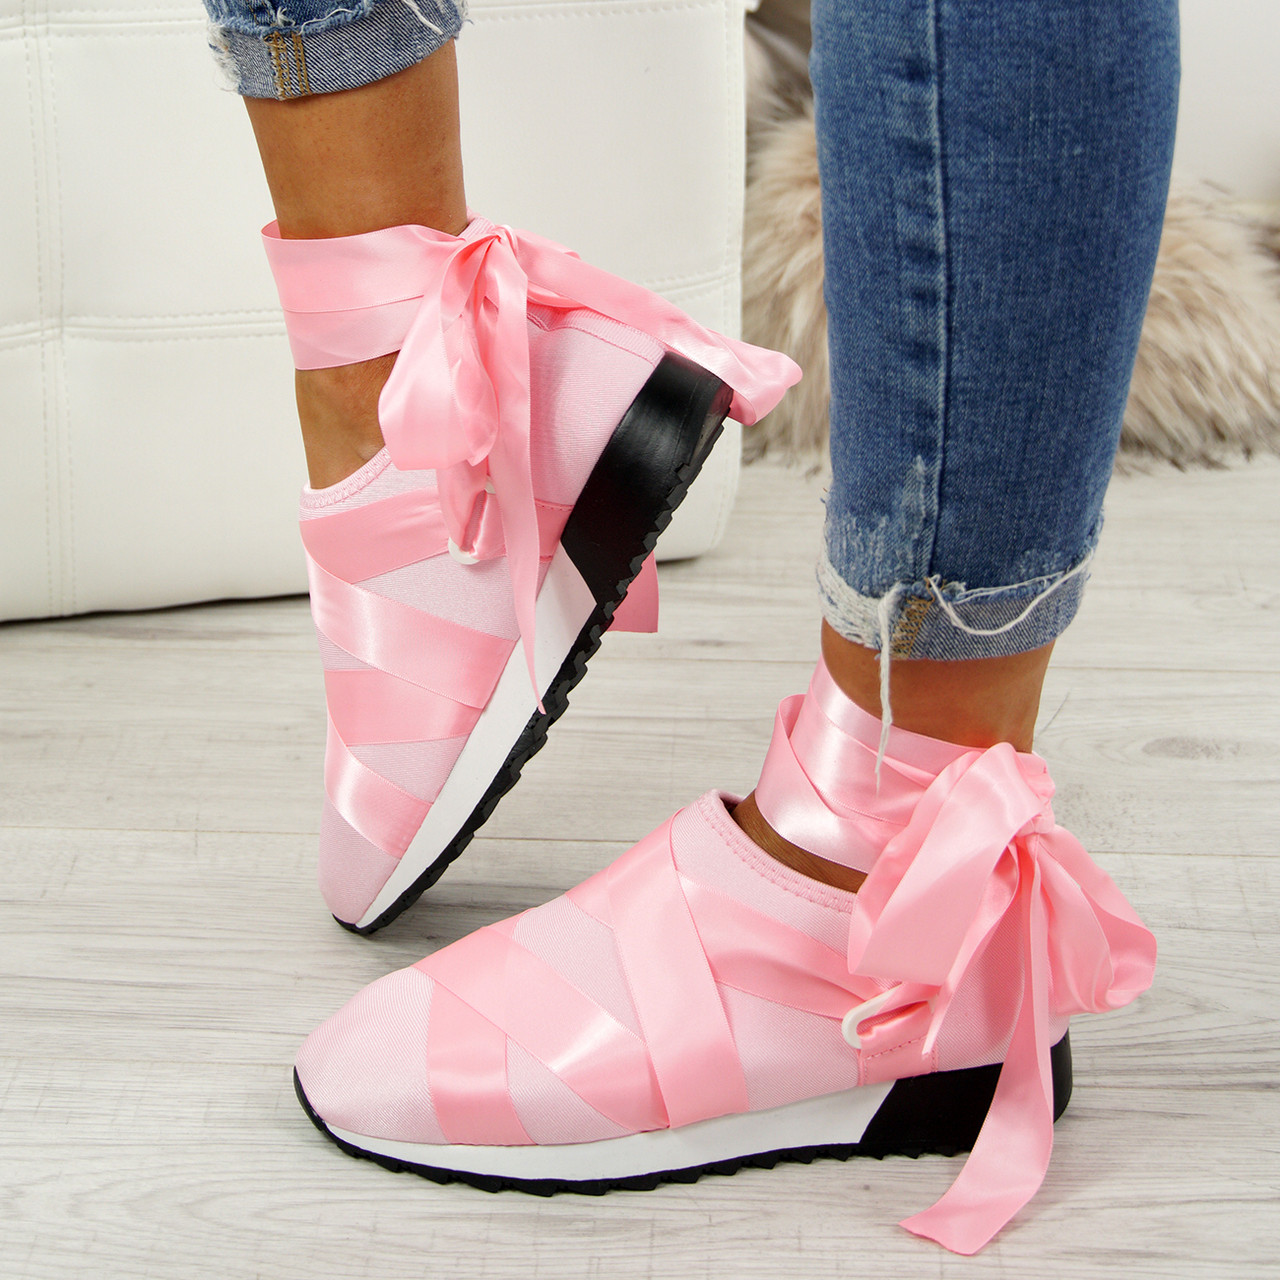 72ecdd2b9bcd2 Loa Blush Lycra Ankle Tie Trainers